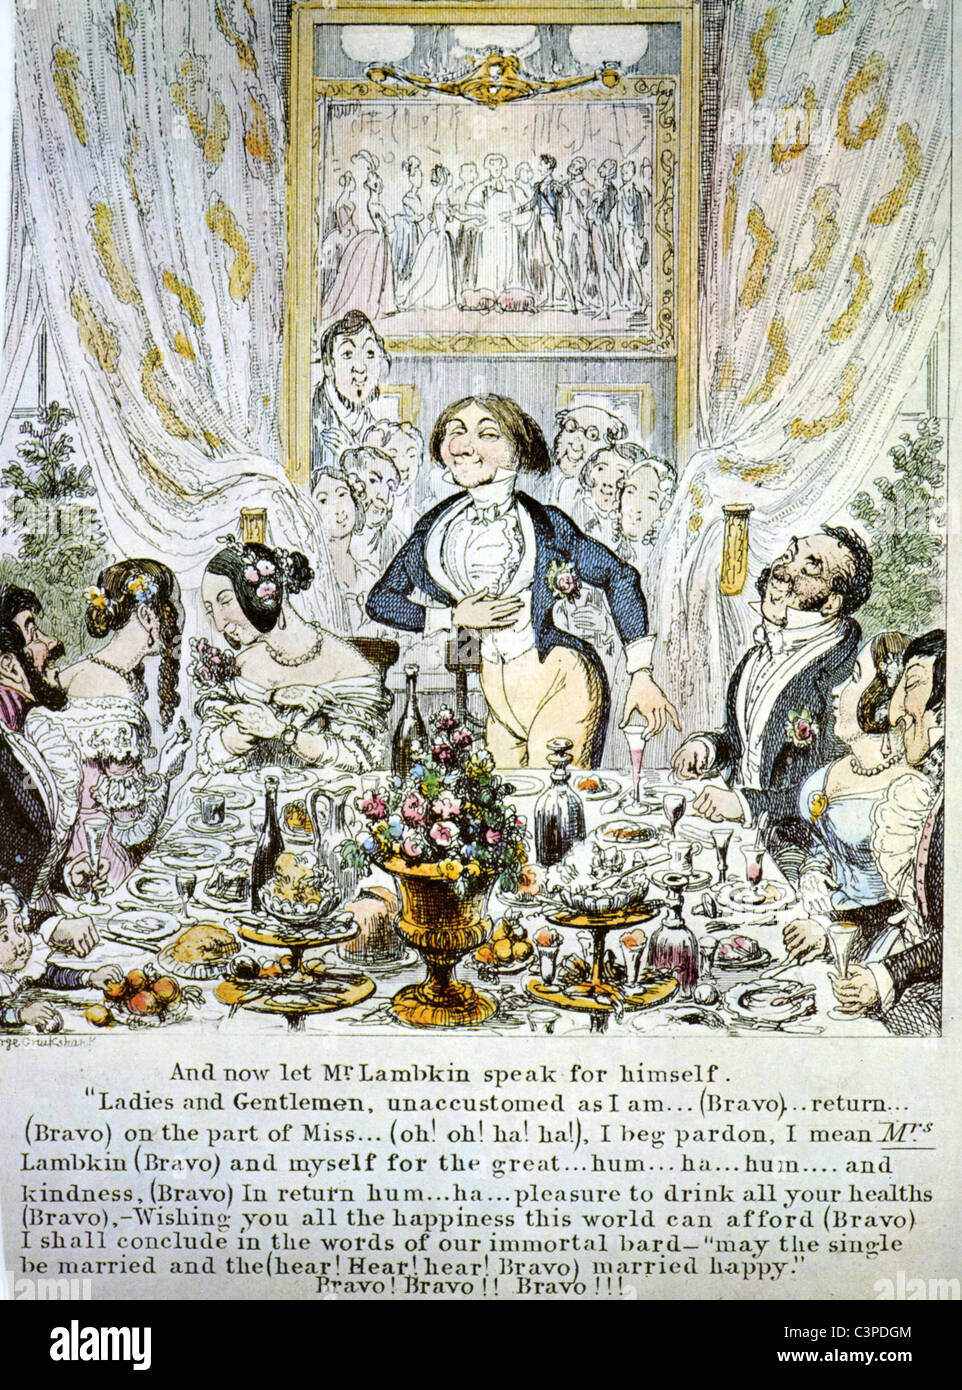 TOASTMASTER George Cruikshank cartoon of the boring Mr Lambkin about 1845 - Stock Image